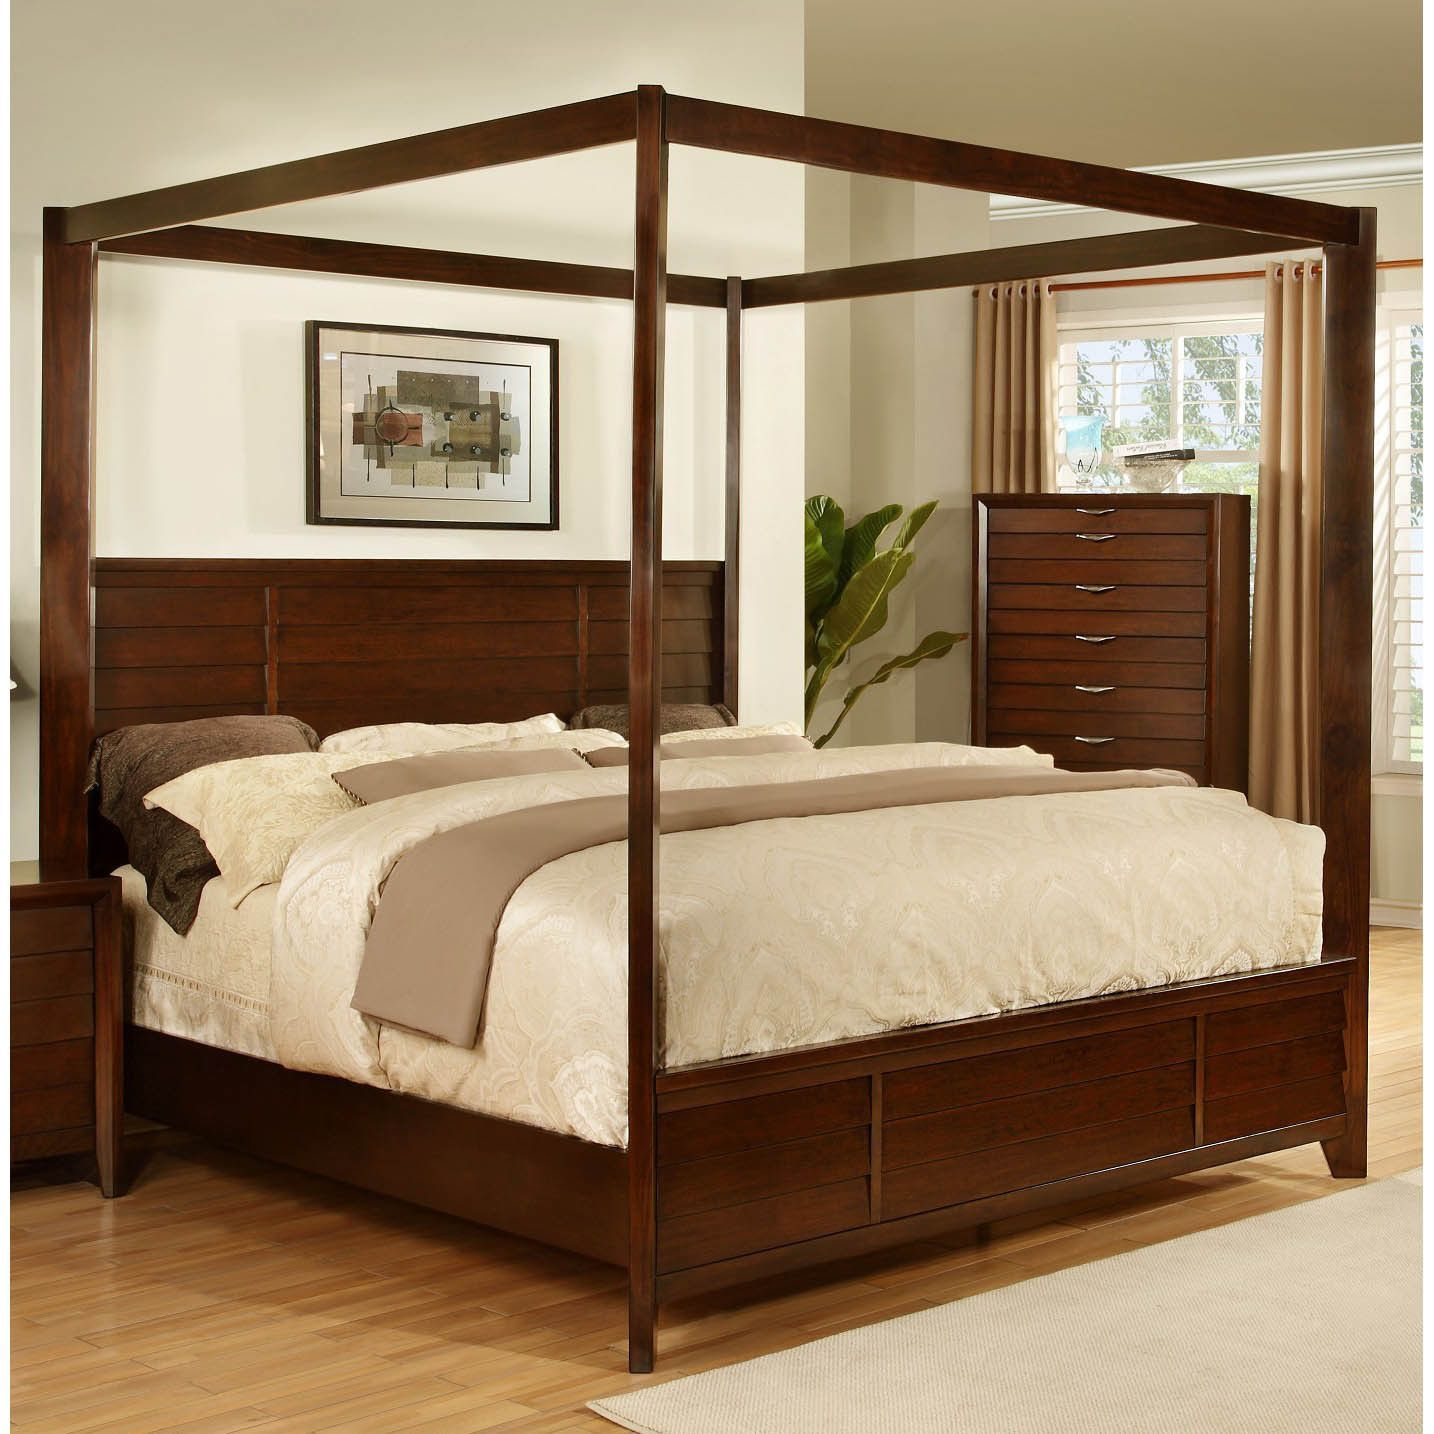 lyke home lana post bed  accent pieces canopy and espresso - introducing the lana collection by lyke home a bedroom set that is sure tobecome